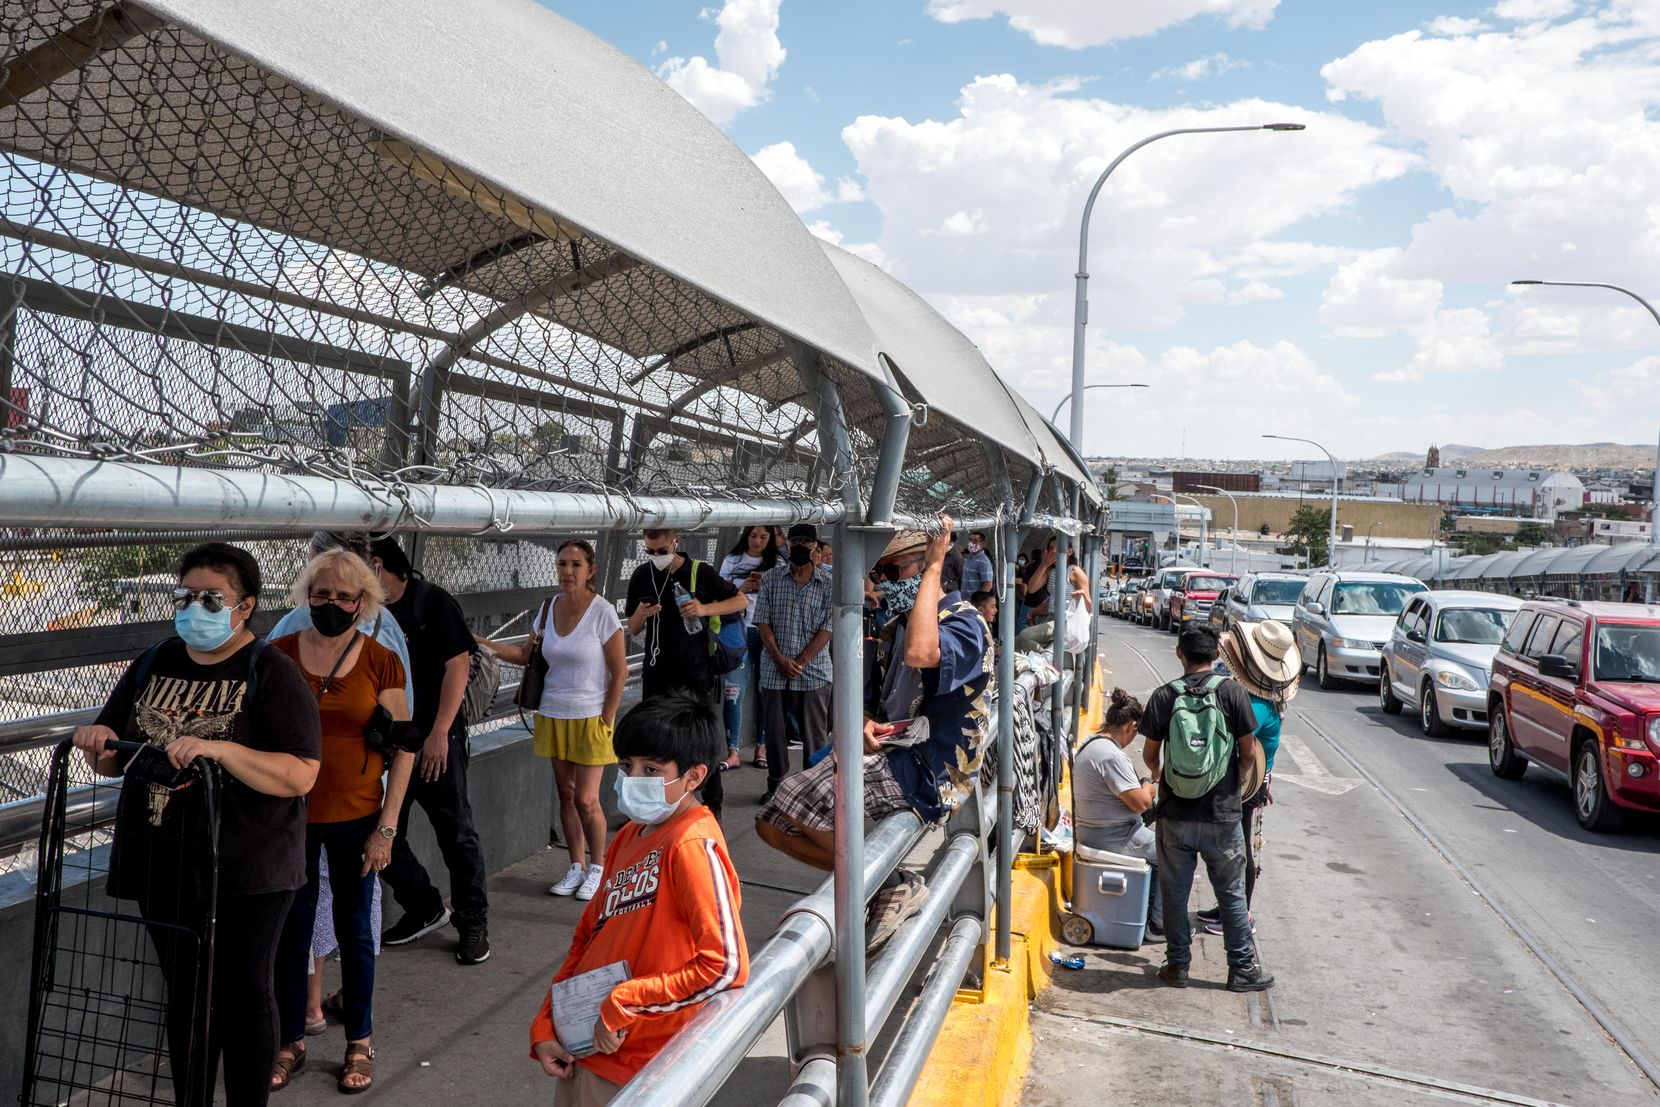 People wait in line to cross the border to El Paso, Texas through the Paso Del Norte Port of Entry in Ciudad Juarez, Chihuahua, Mexico, on Friday, June 26, 2020.